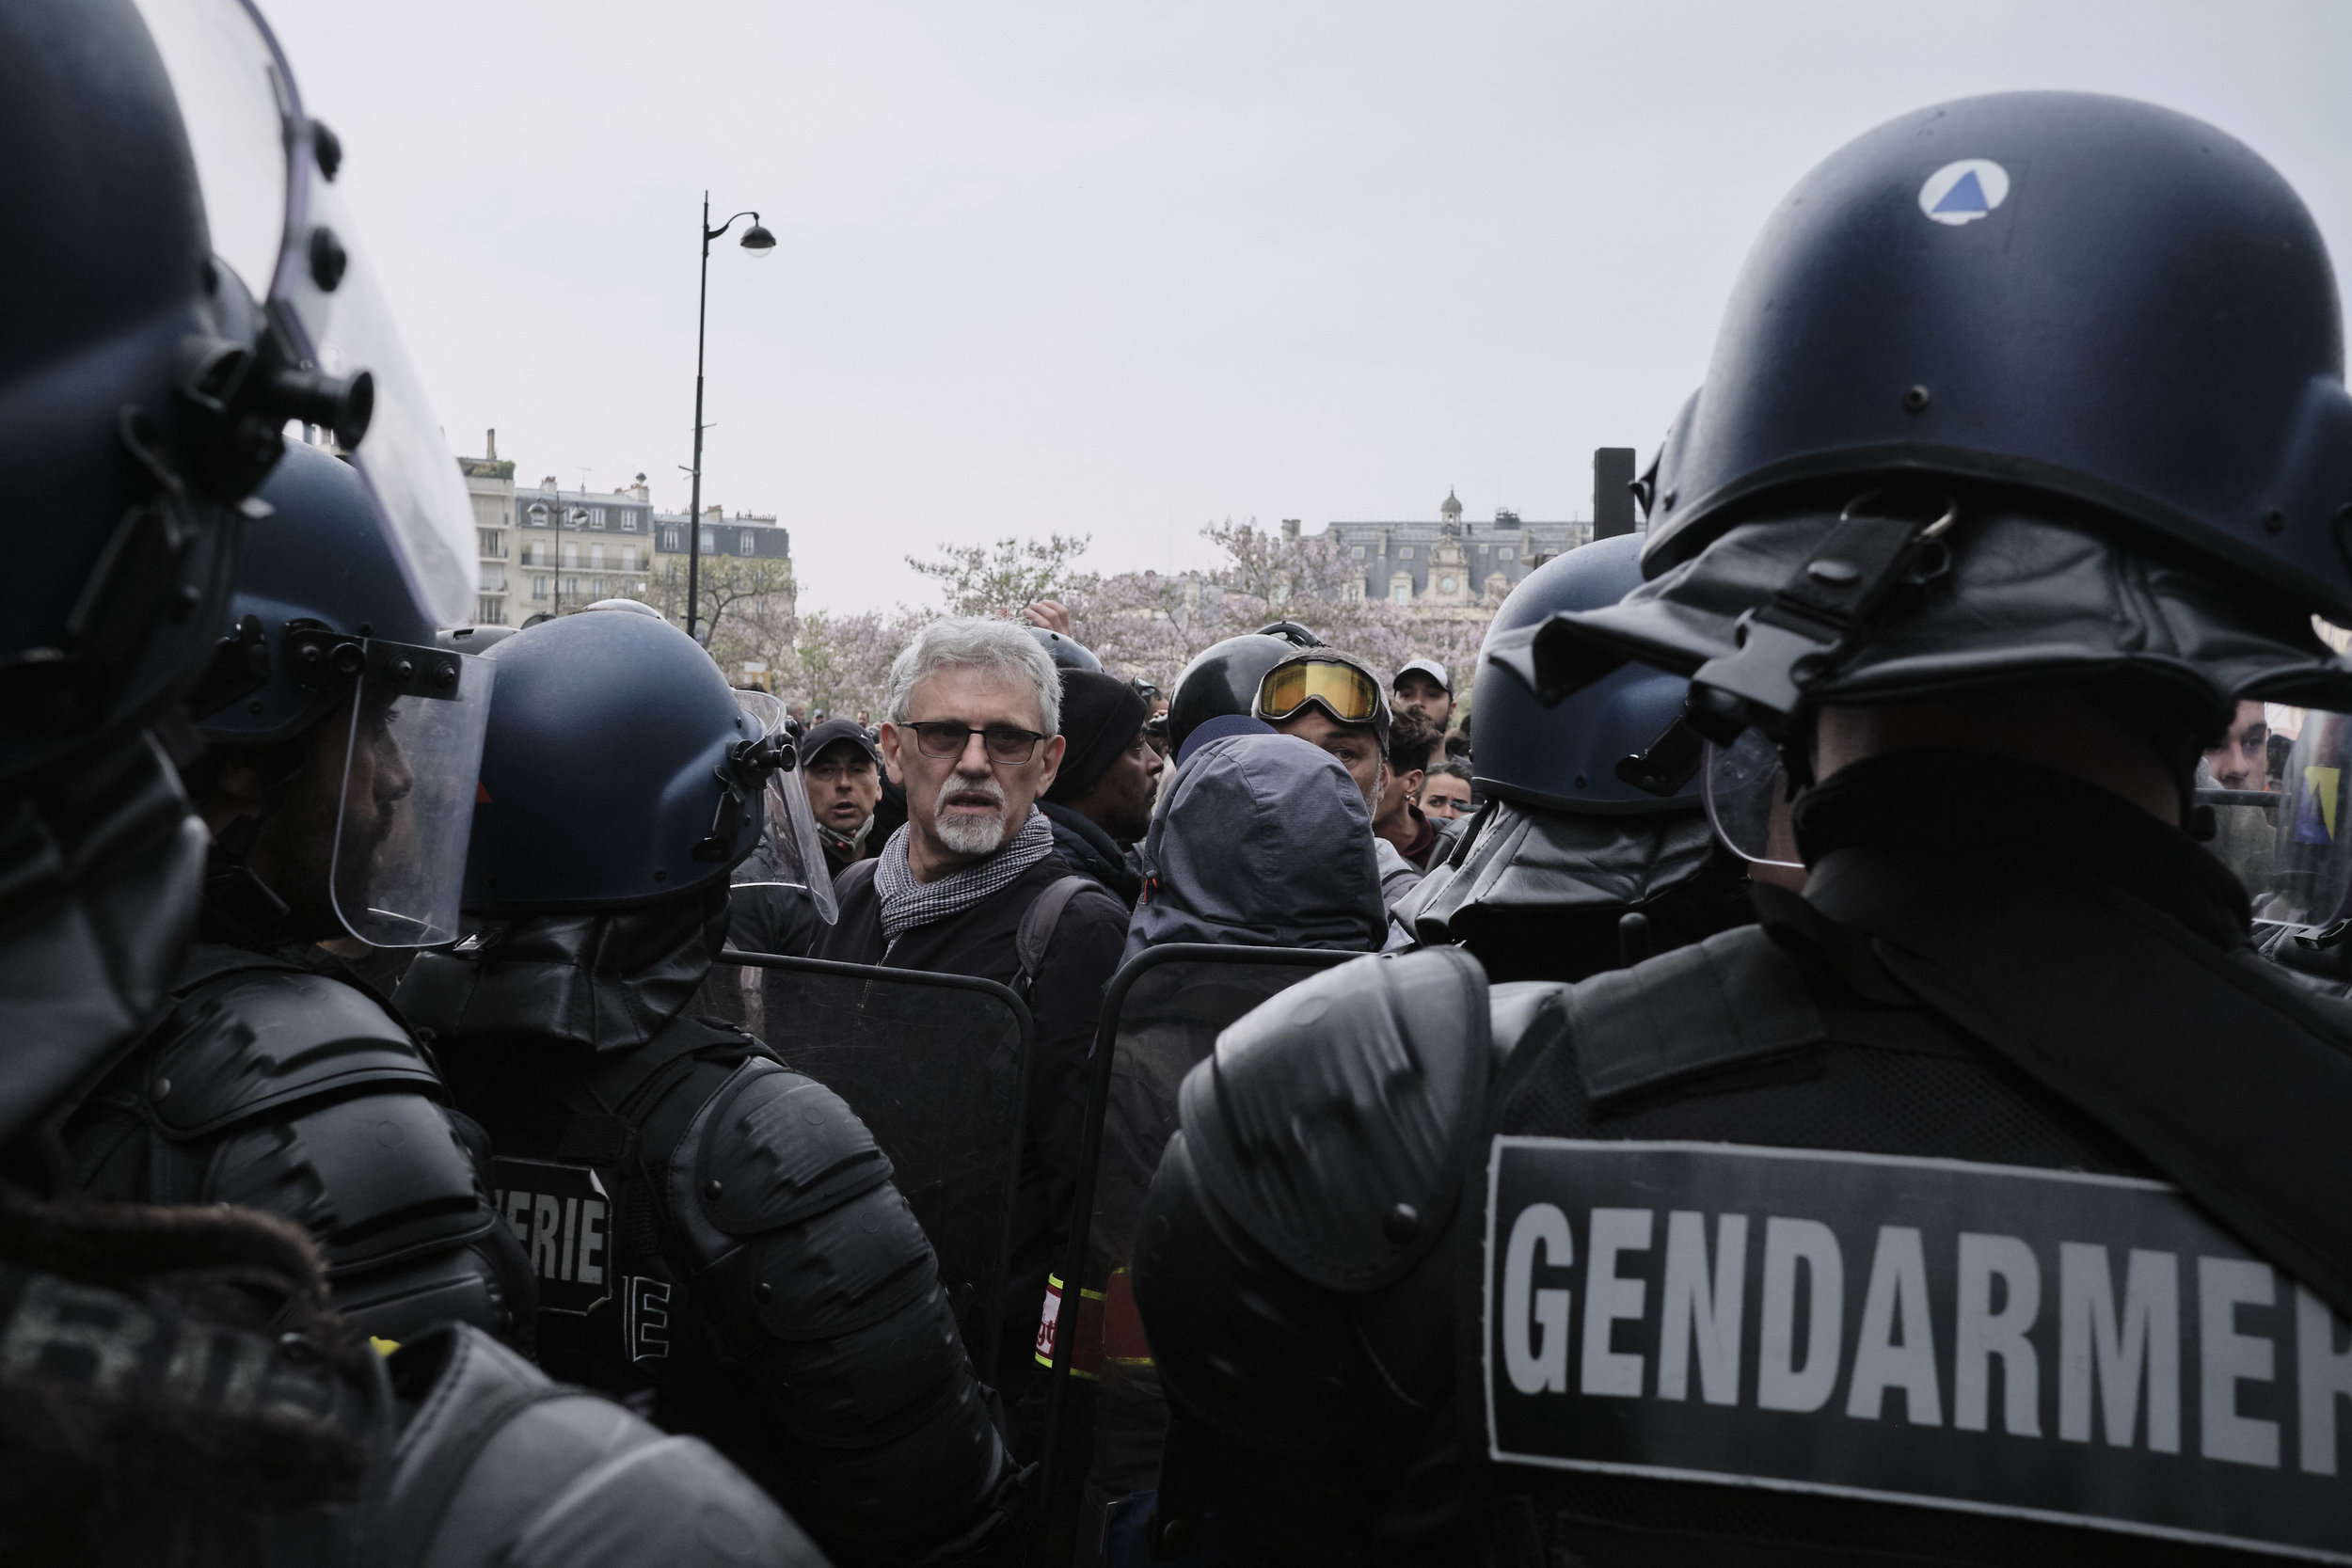 Police blocking the protesters way to The Avenue D'italie forcing participants to give up their yellow vests in order to leave.